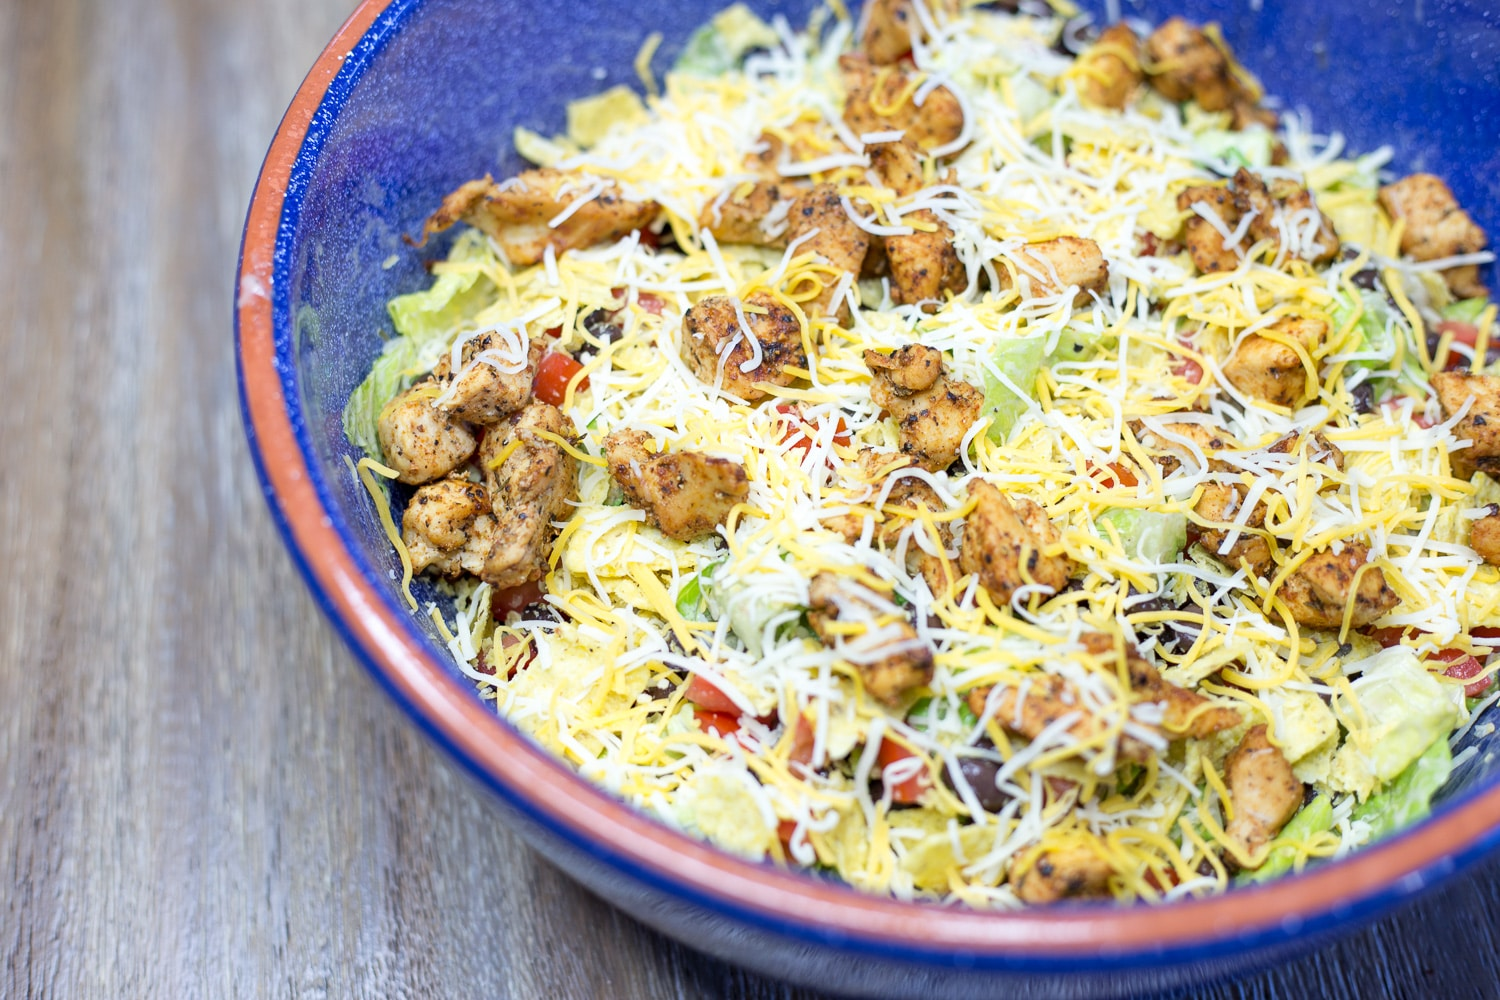 Super simple super tasty taco salad! You don't even have to cook to enjoy this scrumptious meal! |artzyfoodie.com|